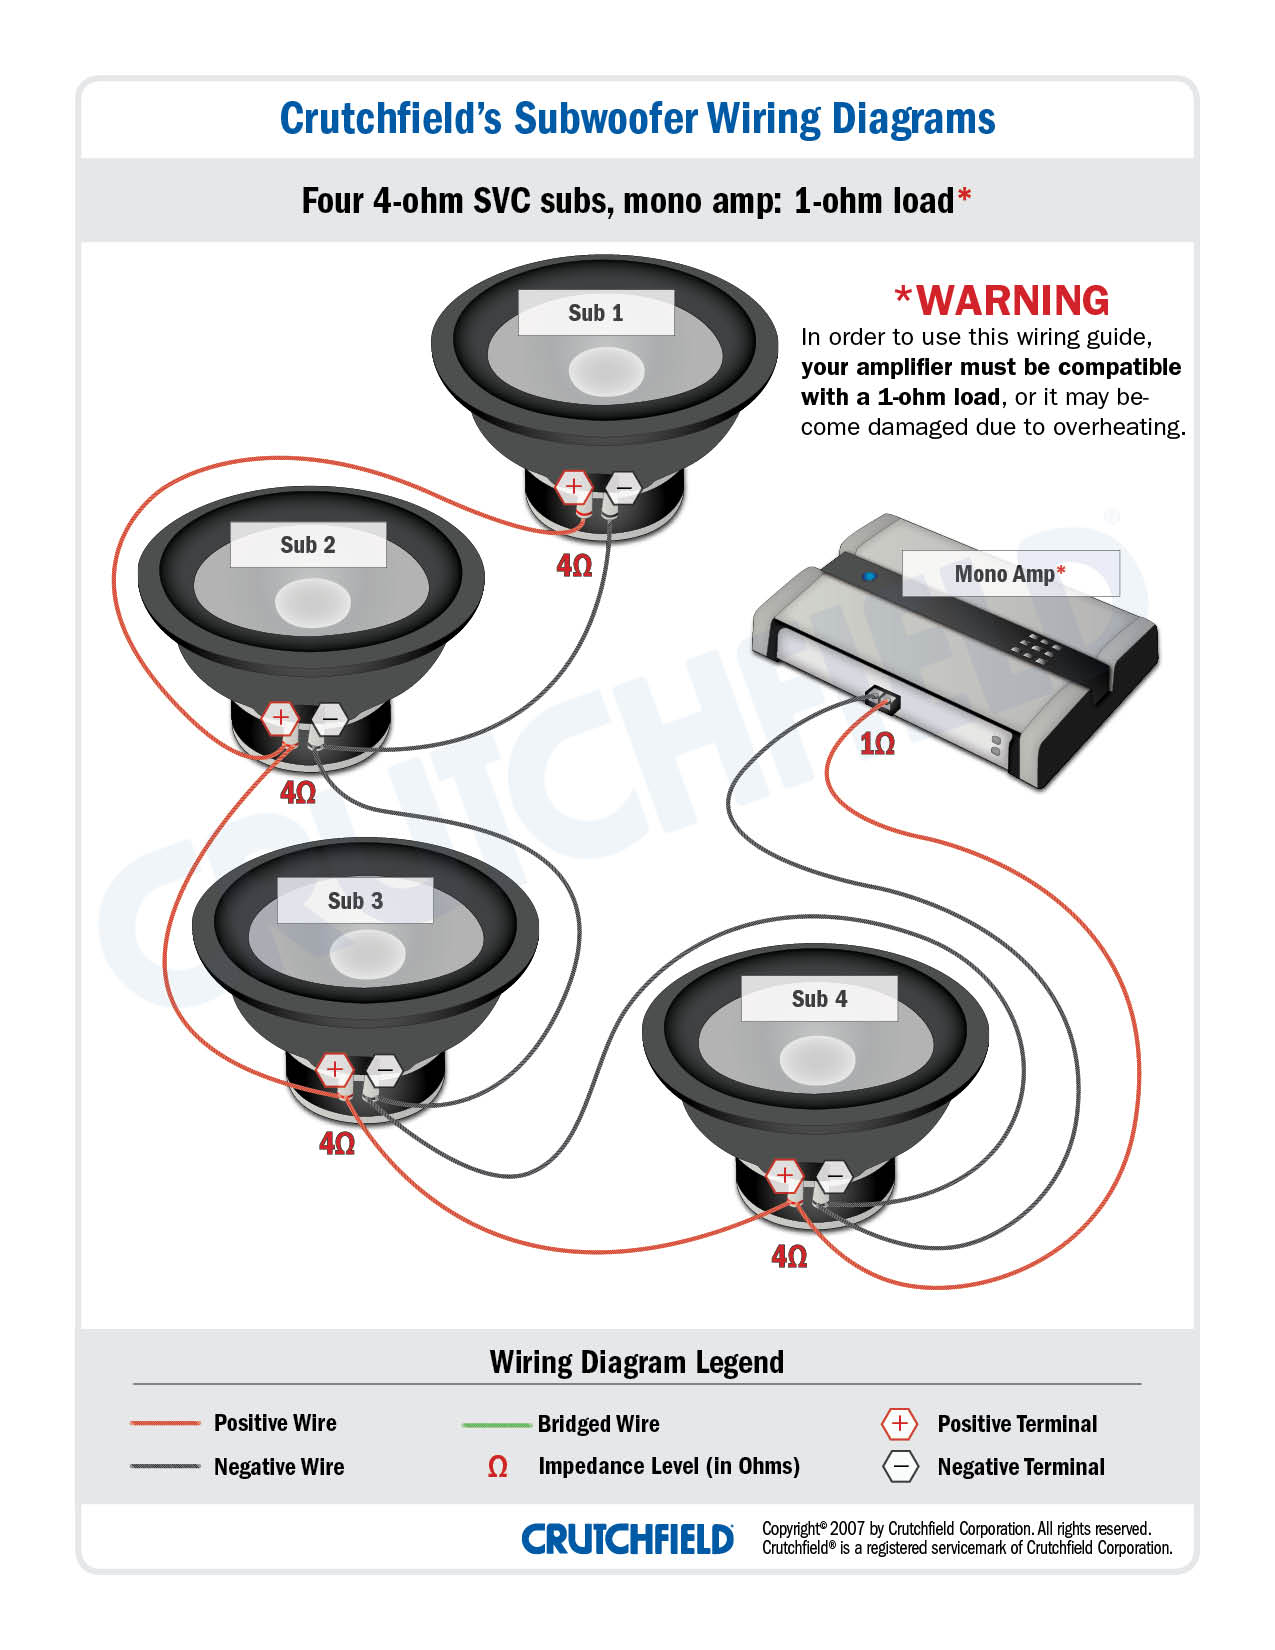 4 SVC 4 ohm mono low imp subwoofer wiring diagrams single voice coil subwoofer wiring diagram at reclaimingppi.co